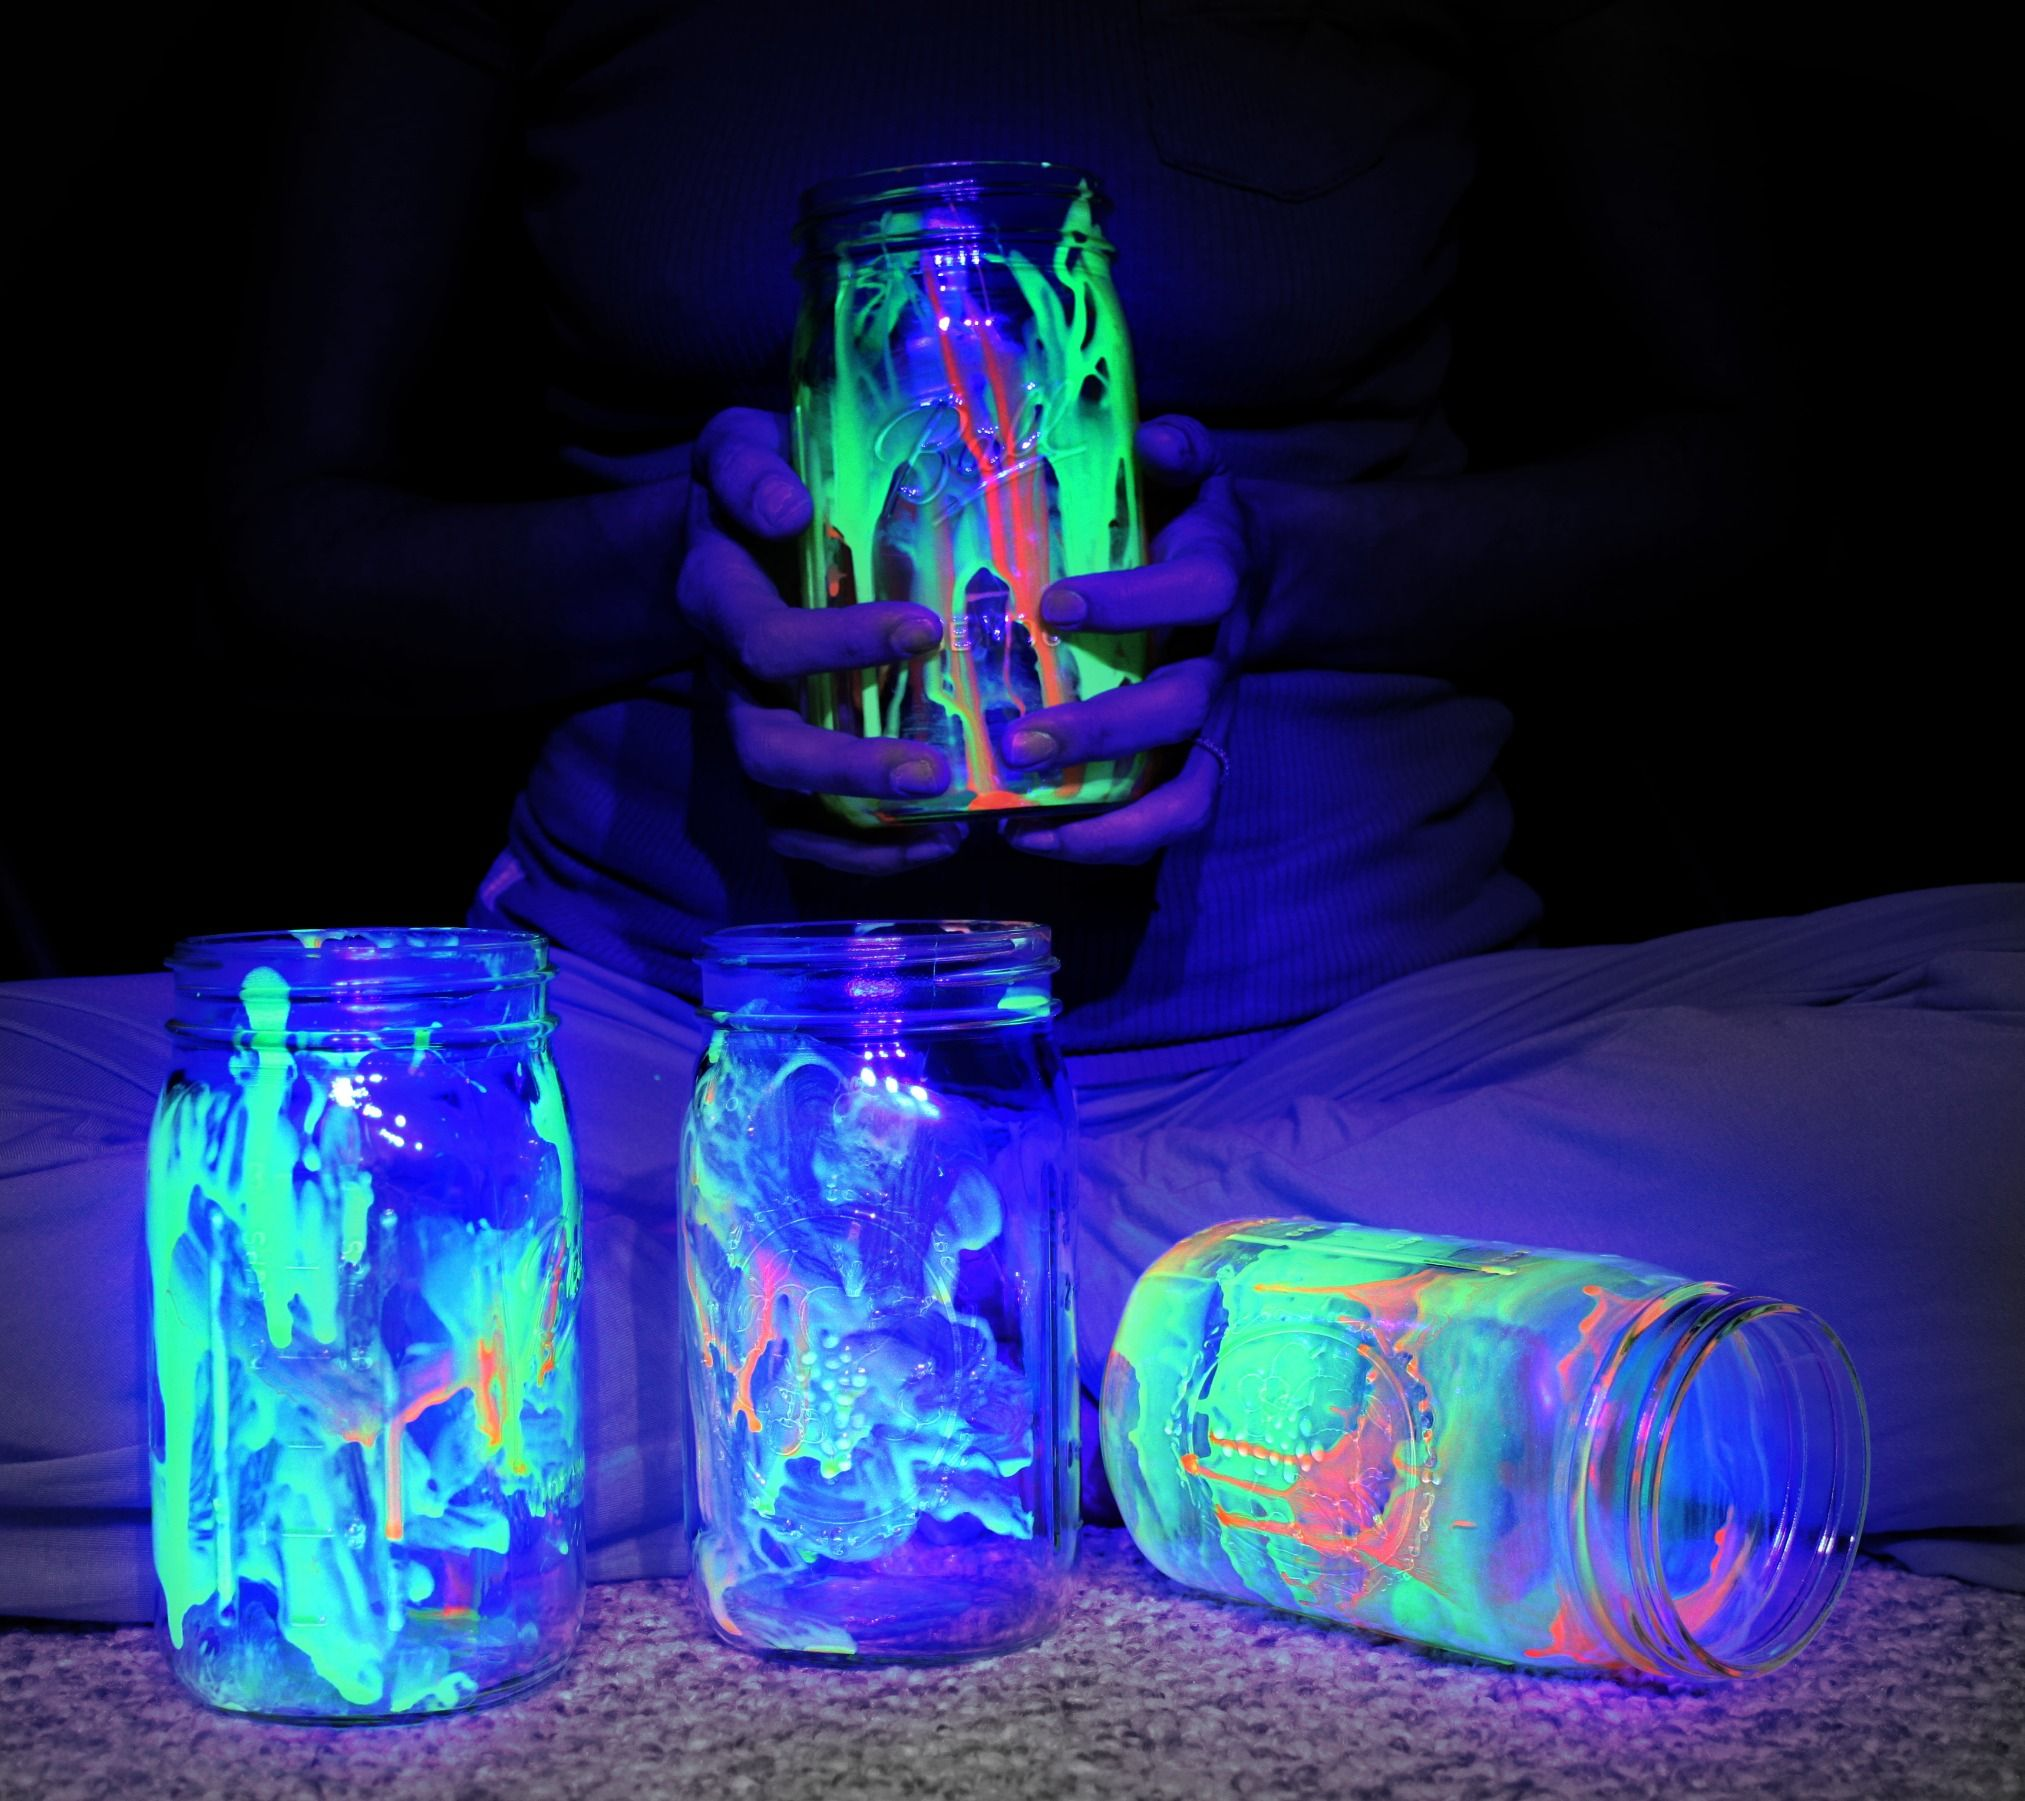 Glow In The Dark Jars, Glow In Black Light, With